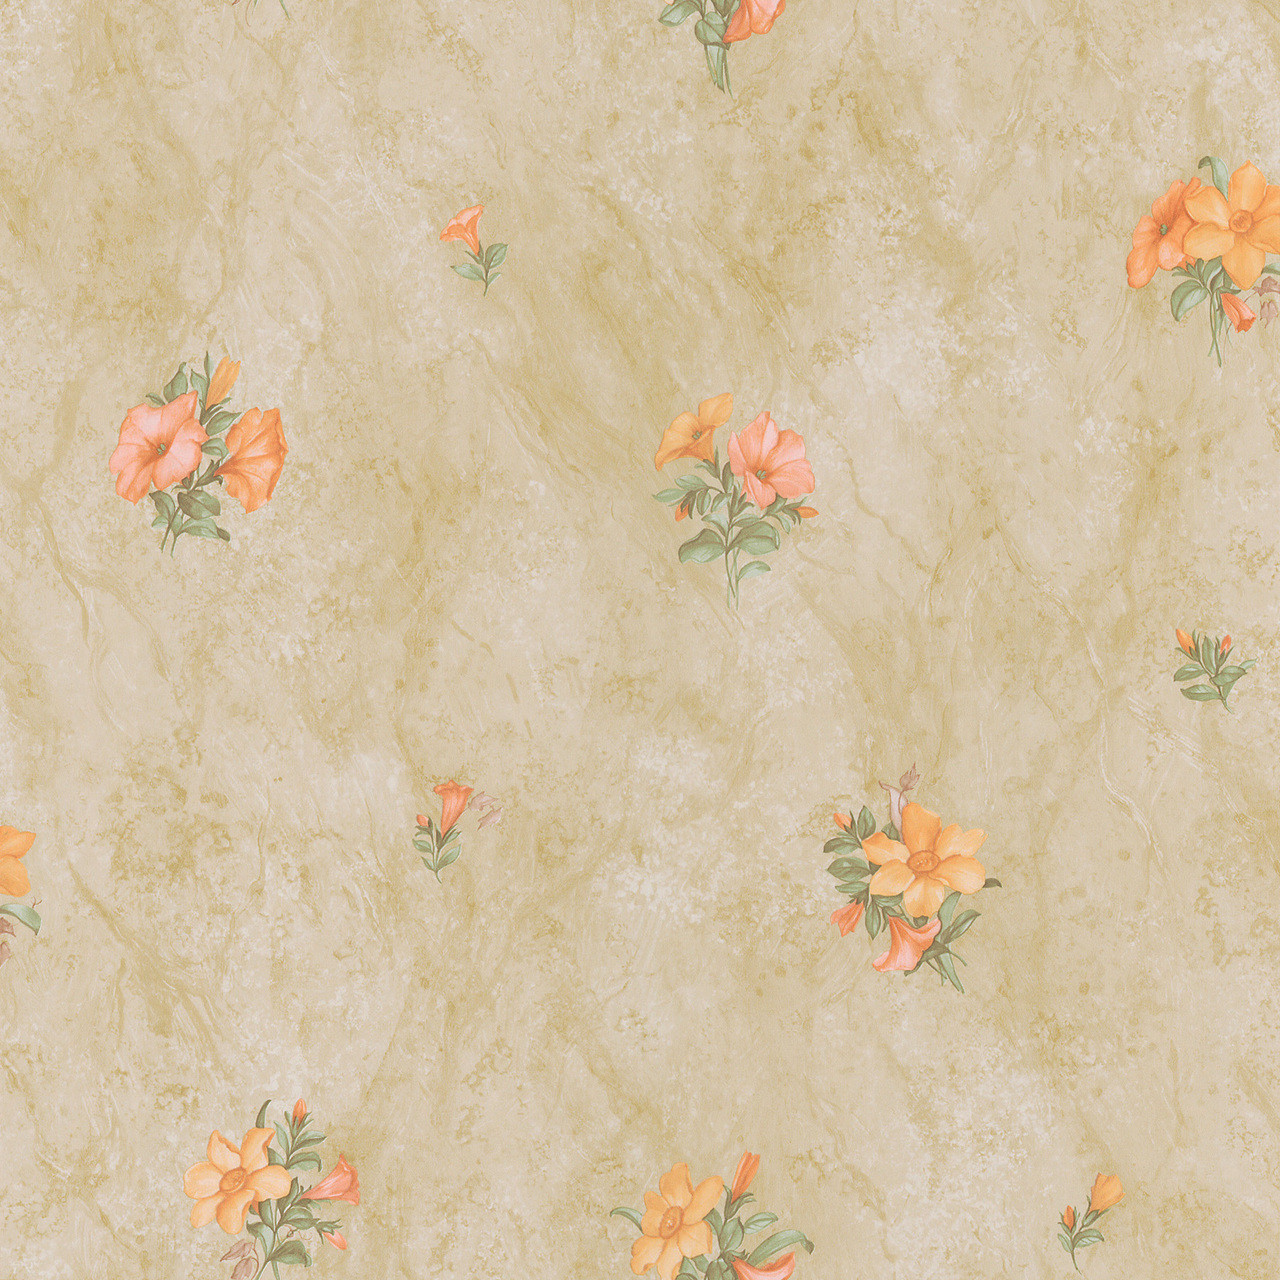 436 45103 Petunia Peach Marble Floral Wallpaper